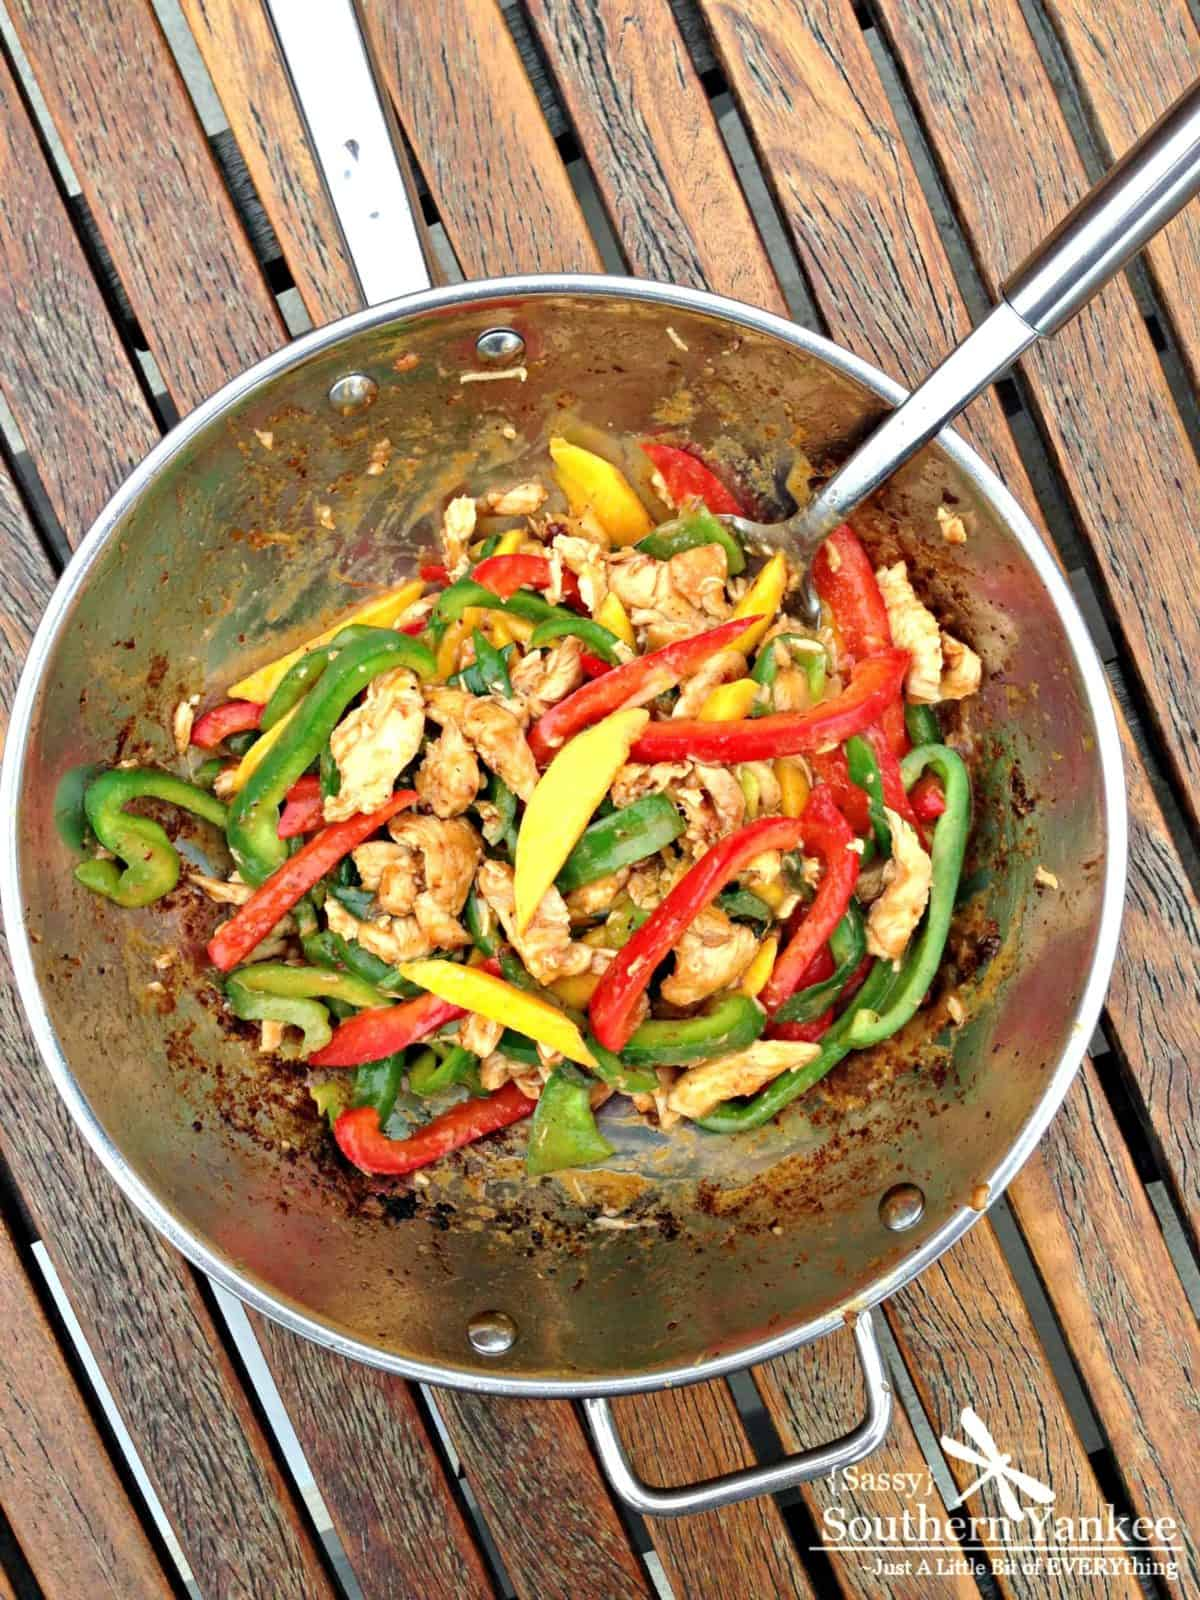 Stir-Fried-Chili-Mango-Chicken-With-Peppers-5